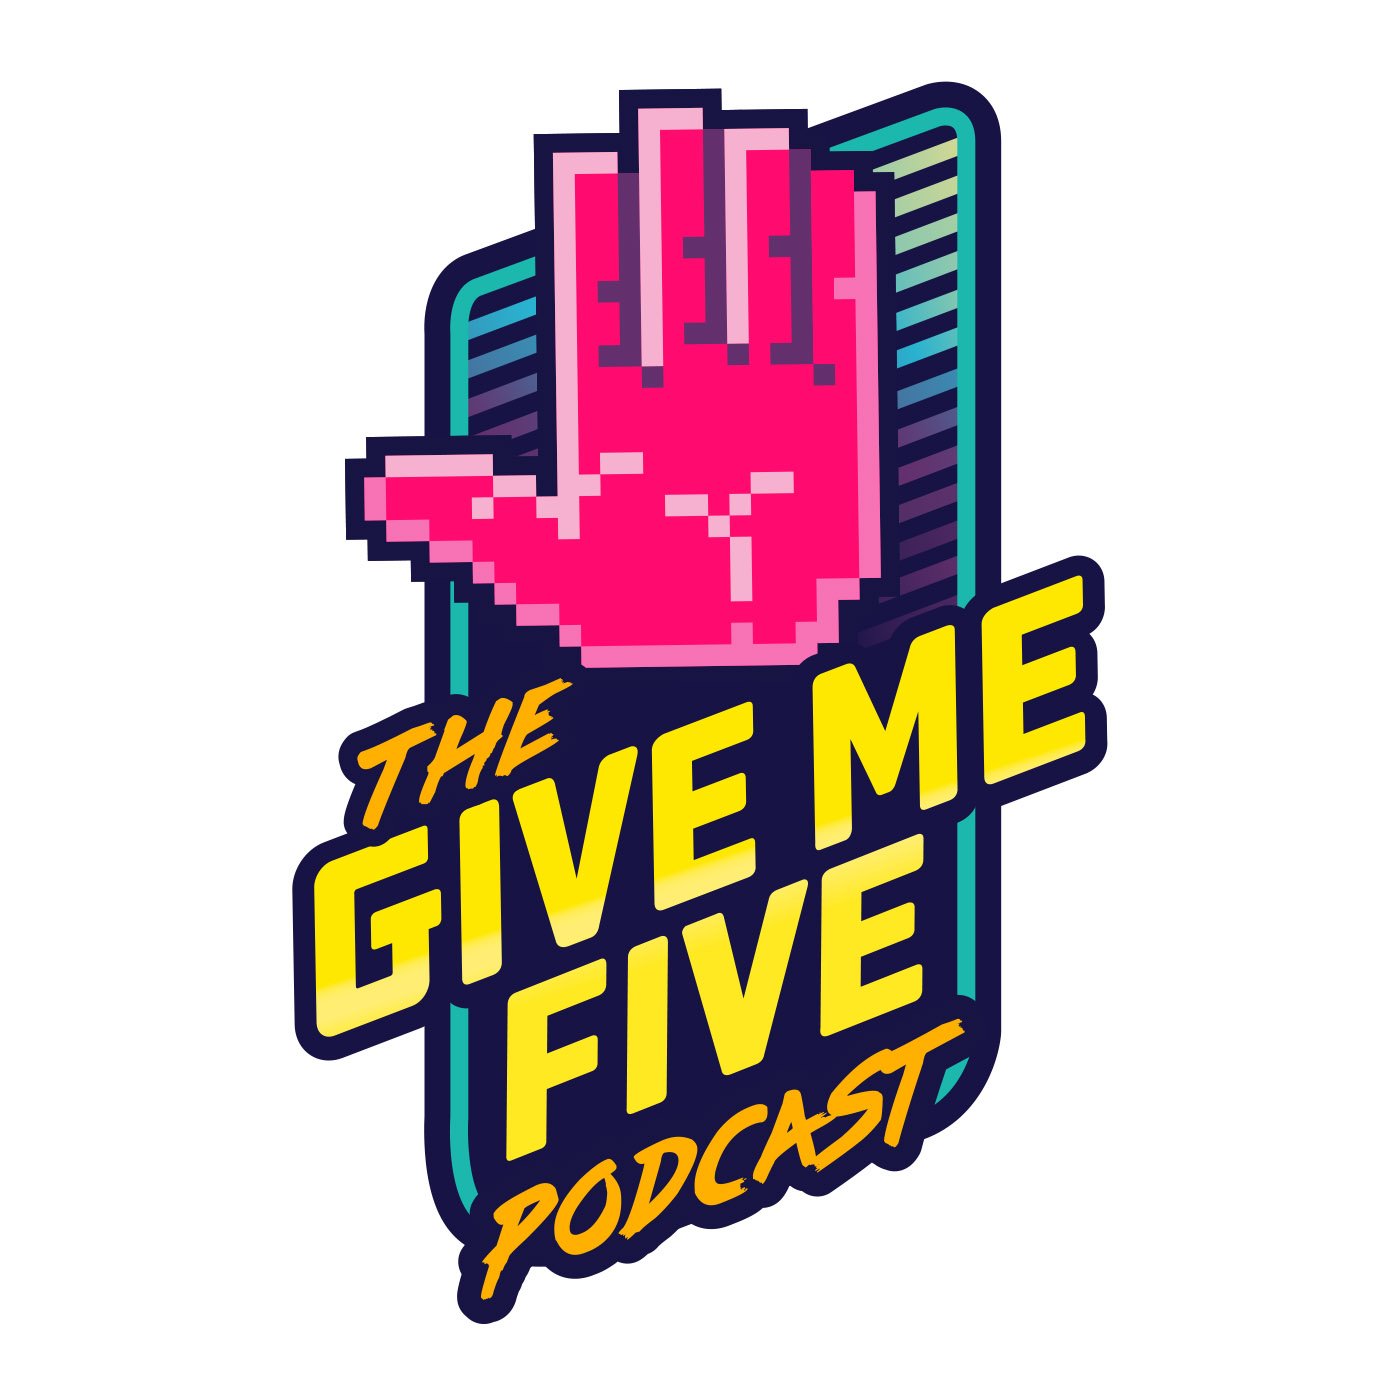 The Give Me Five Podcast: An Uncultured Look at Pop Culture and Nostalgia show art